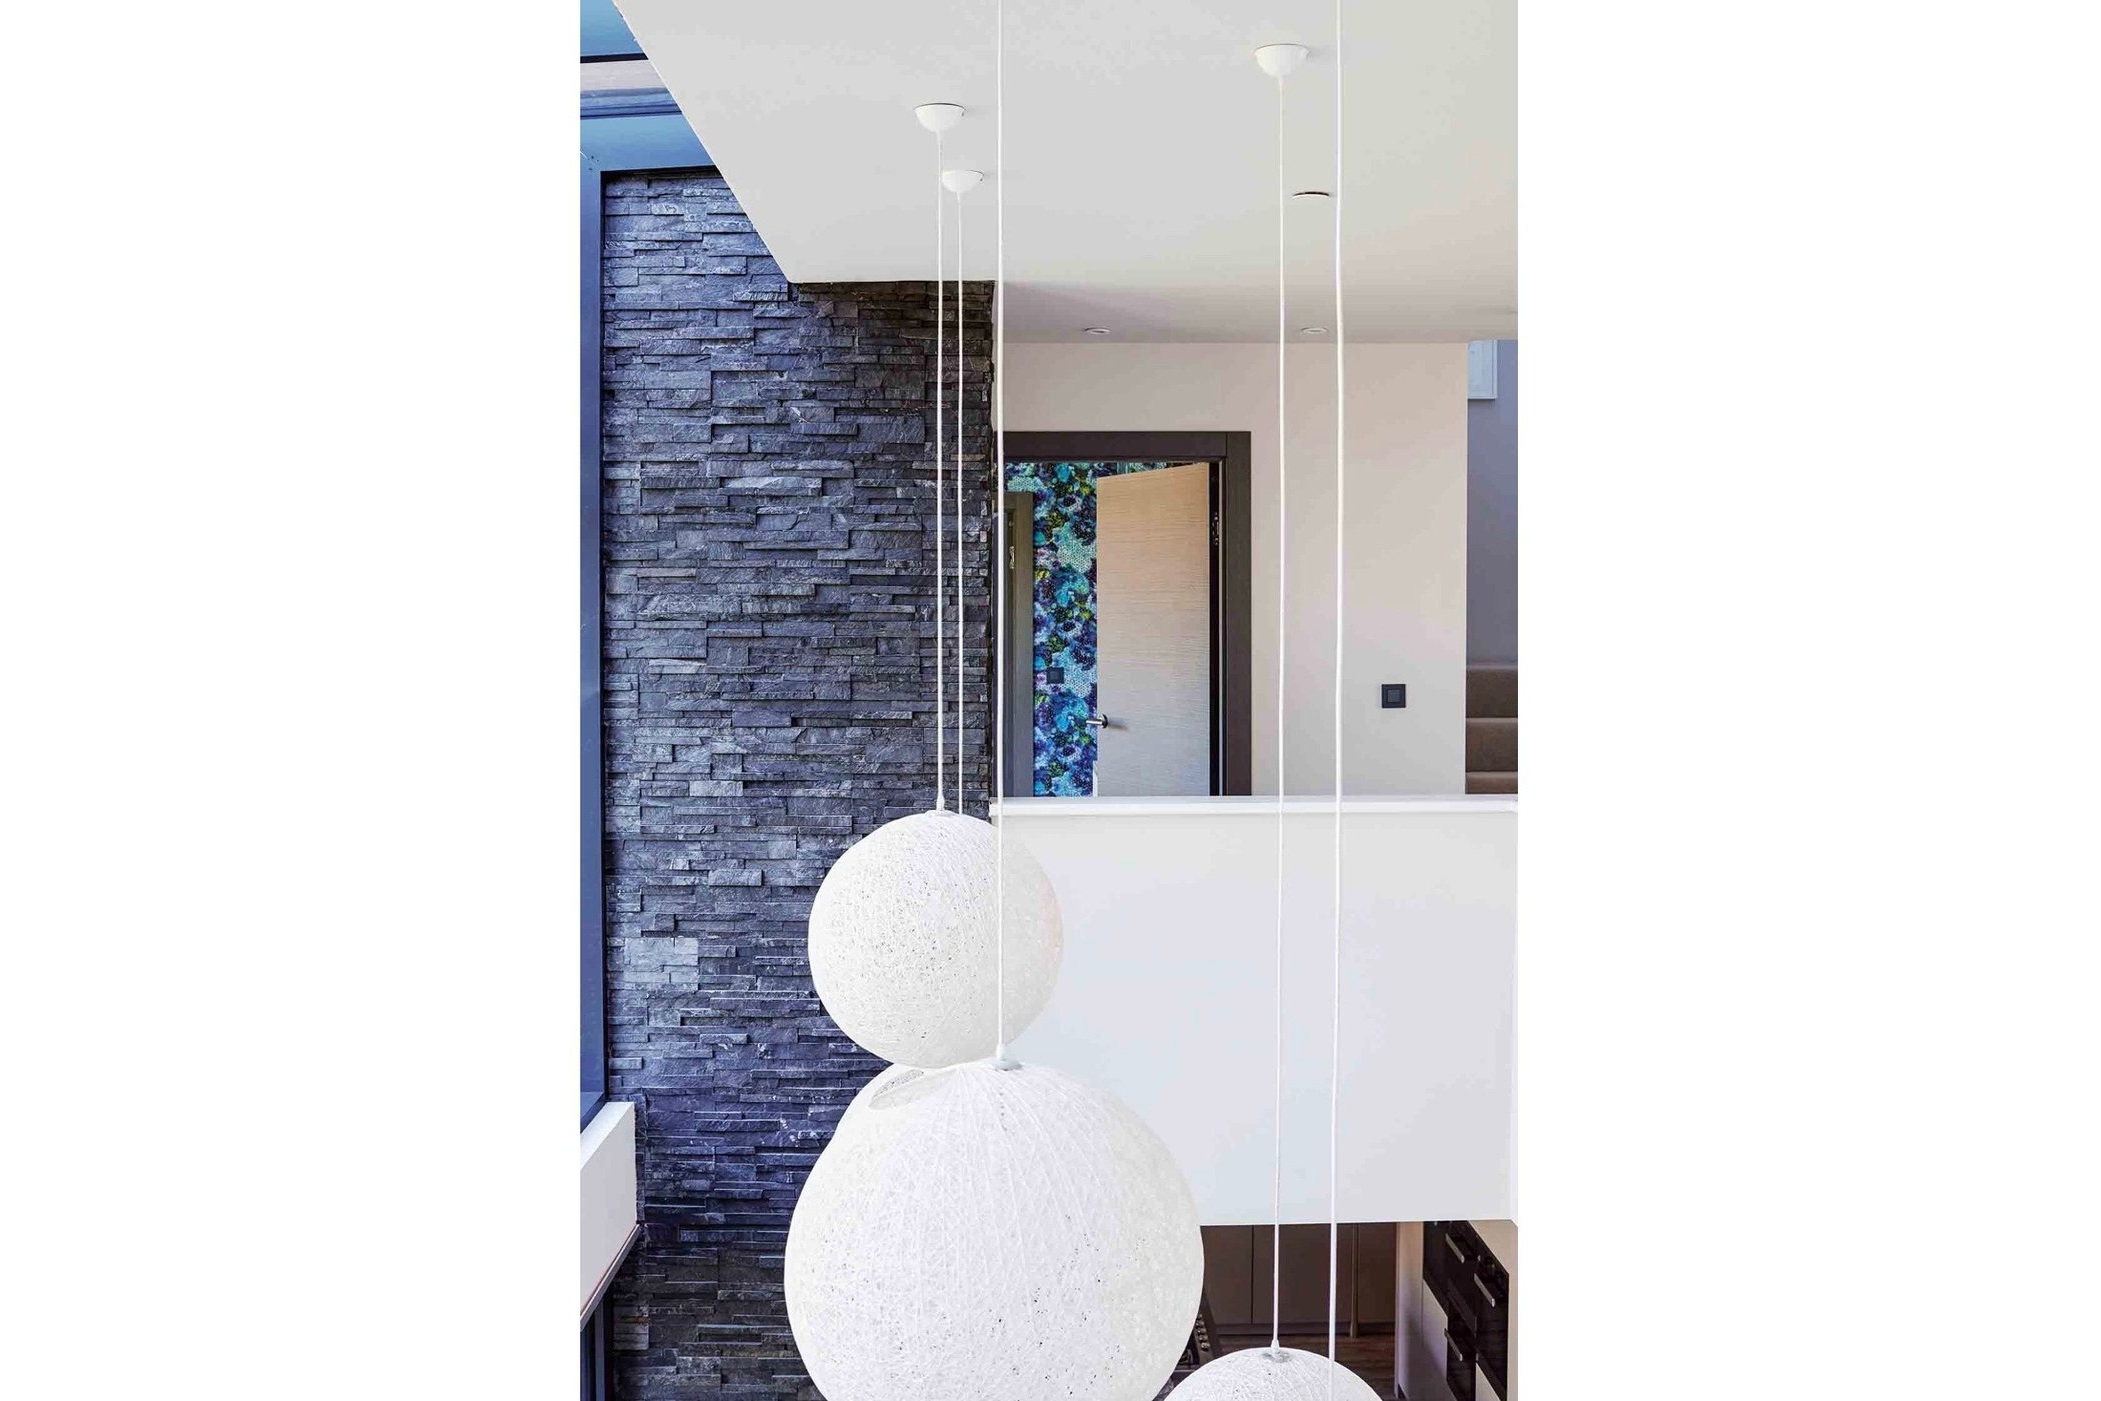 OBA_Beaconsfield-House_5_WH.jpg